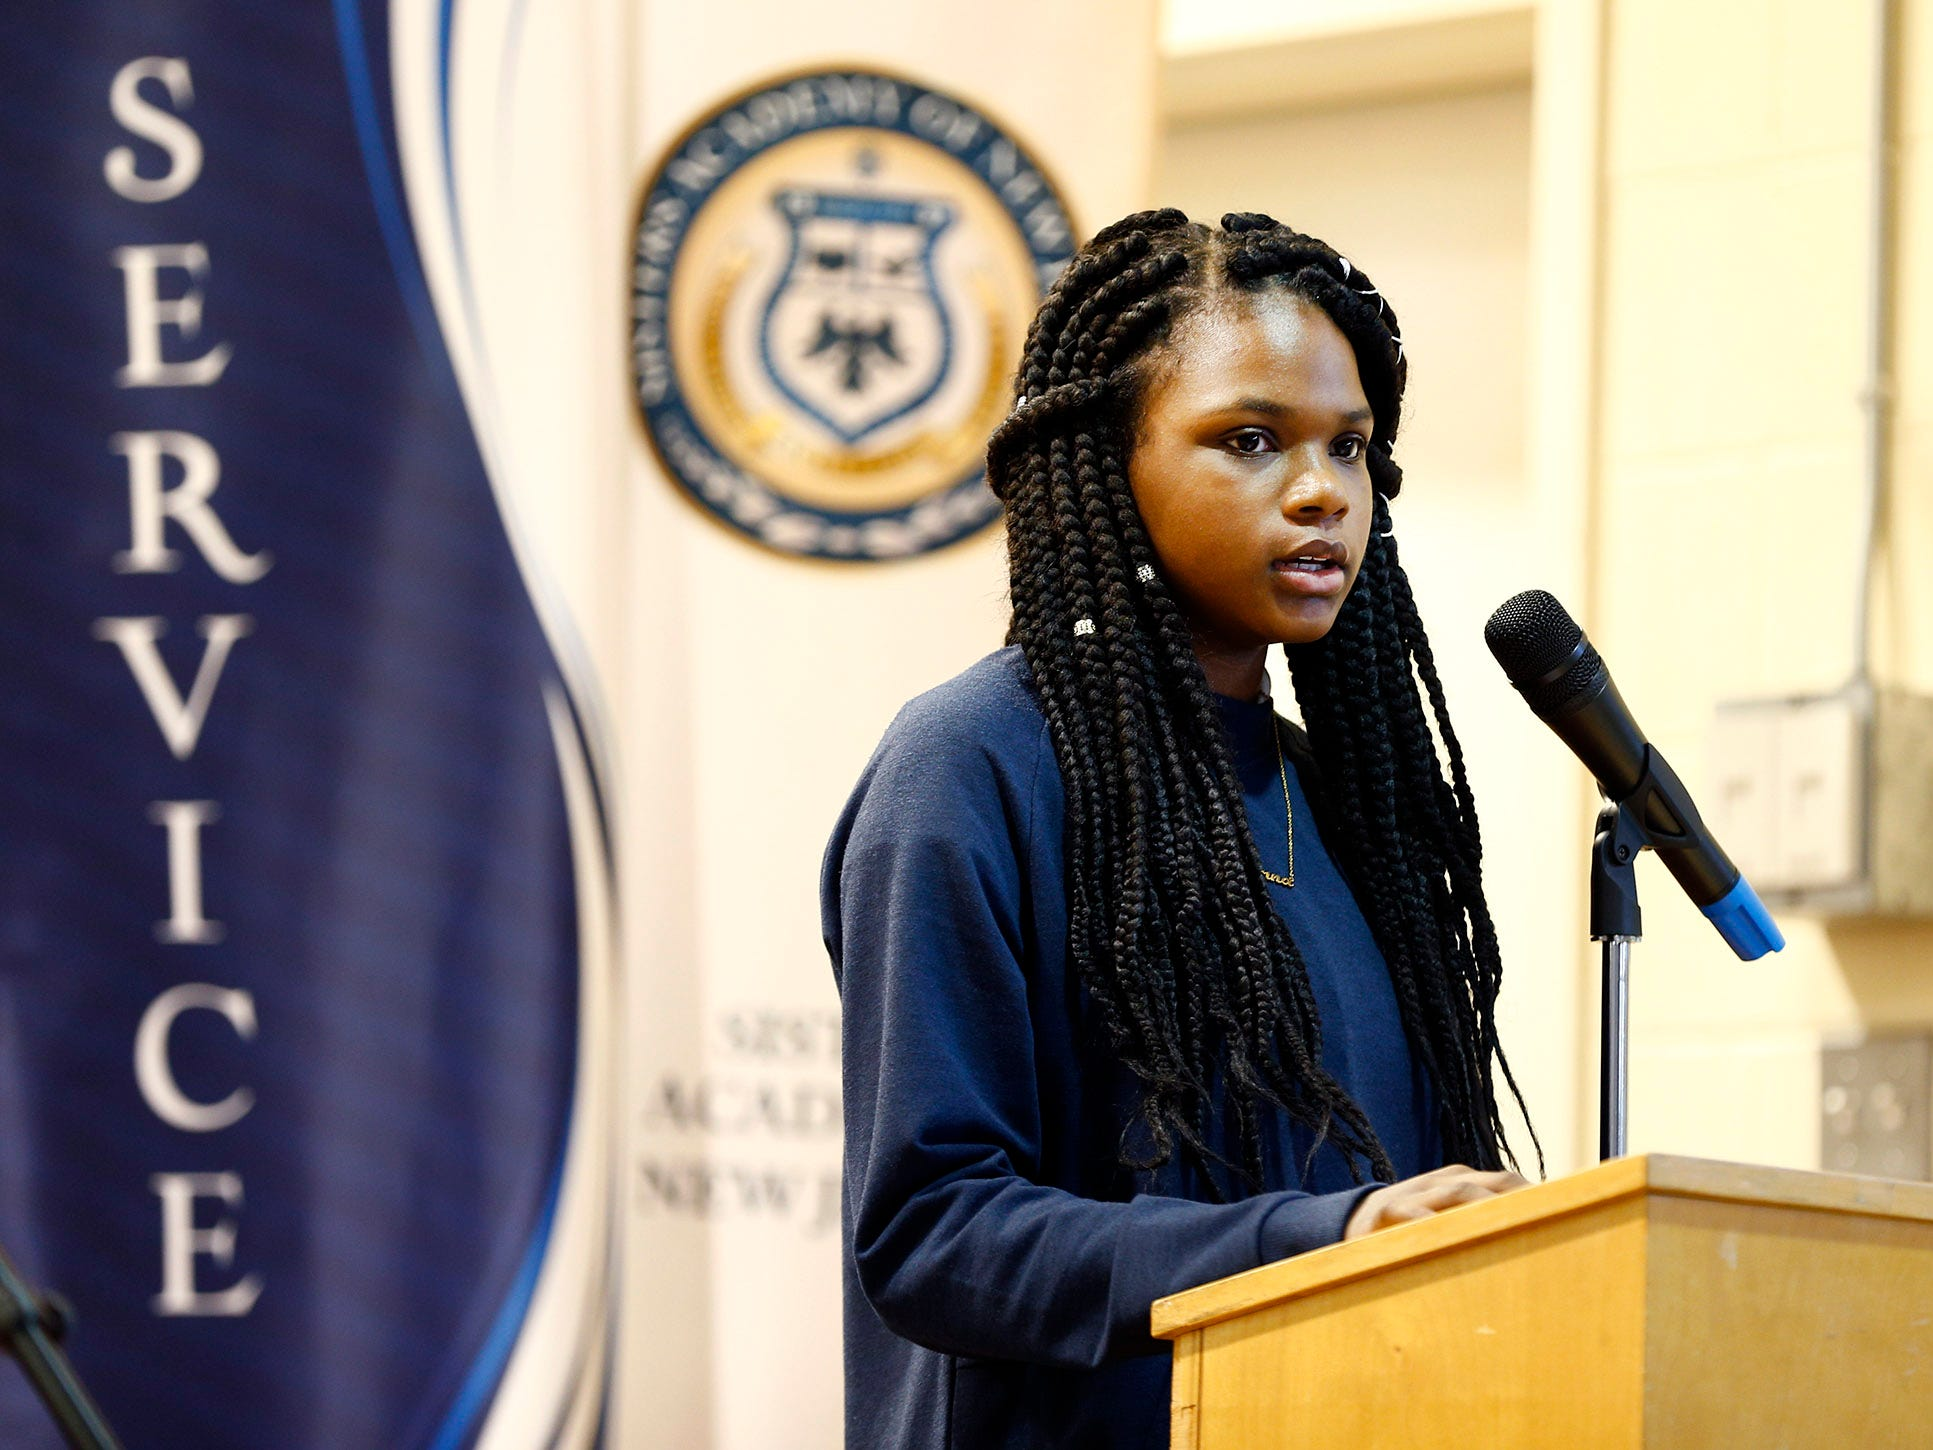 Sisters Academy 7th grader Giana Reevey performs her persuasive essay during the 8th Annual Miller Speaking Contest at the Asbury Park school Thursday, March 14, 2019.